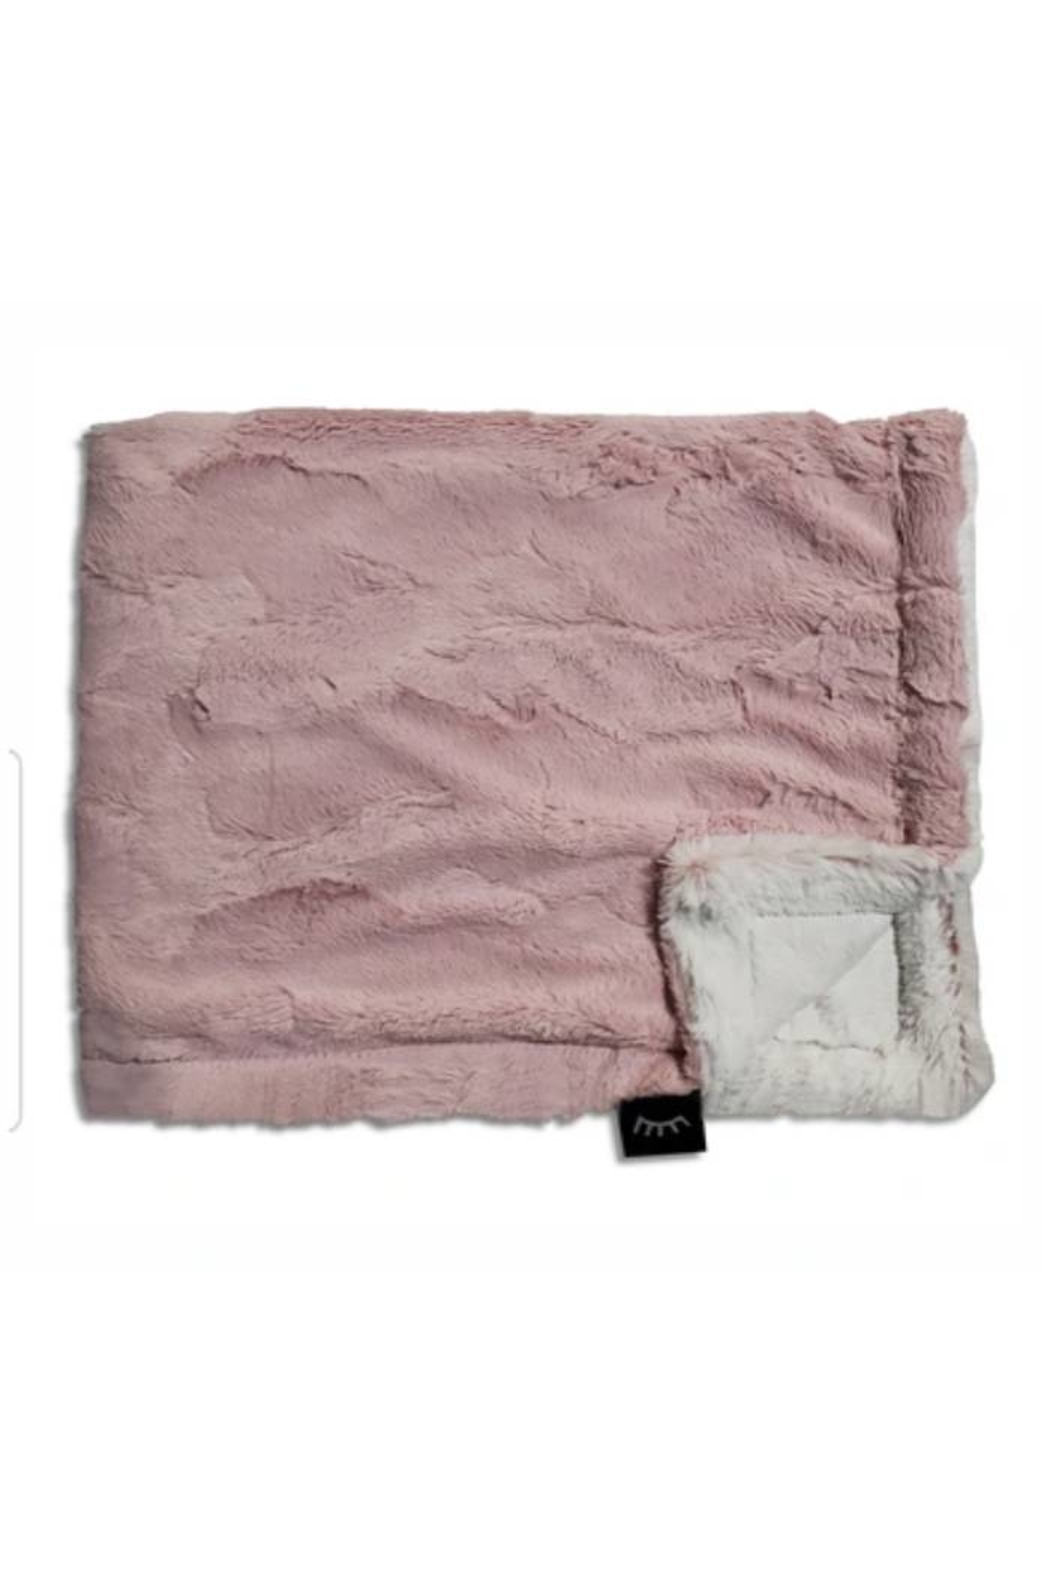 Winx+Blinx Rosewood Frost Minky Blanket (34 X 29 Inches)for Newborn Baby Boys Girls Winter Swaddle - Main Image